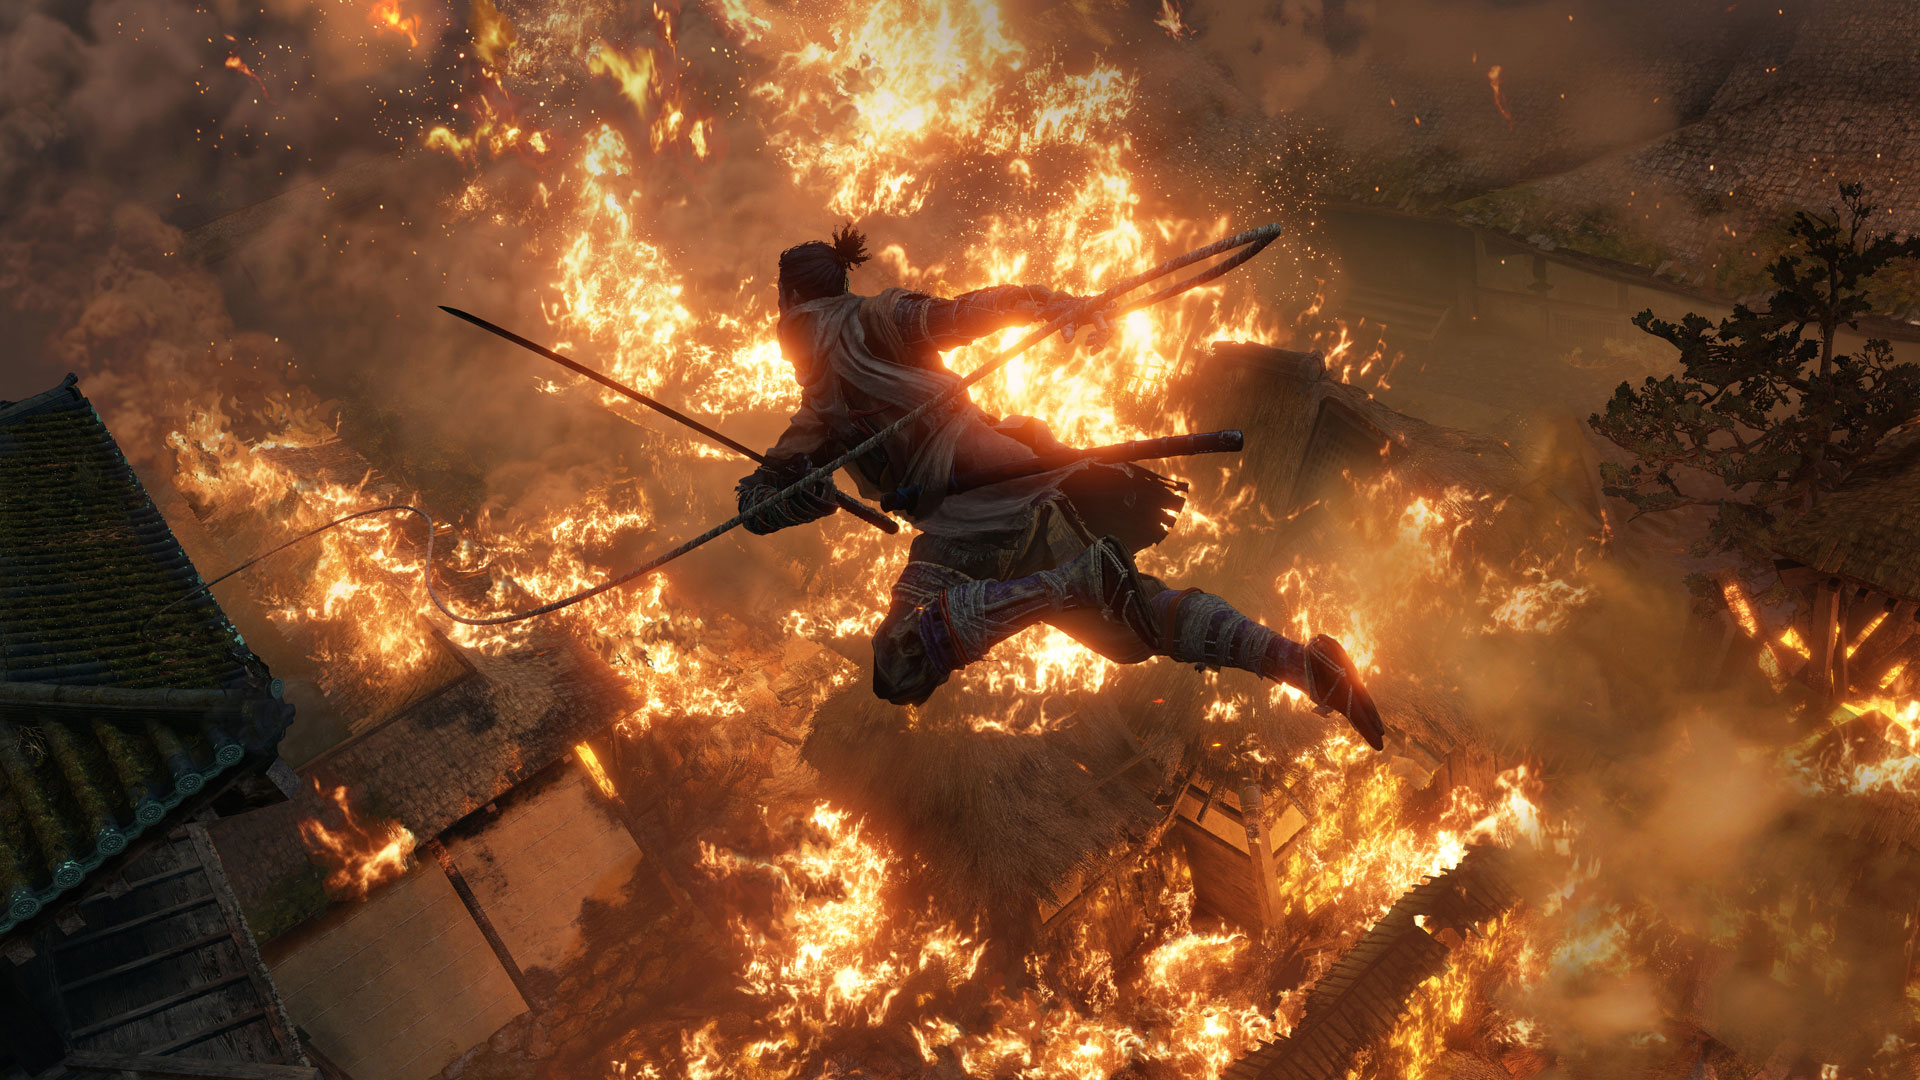 Sekiro-screenshots_27.jpg